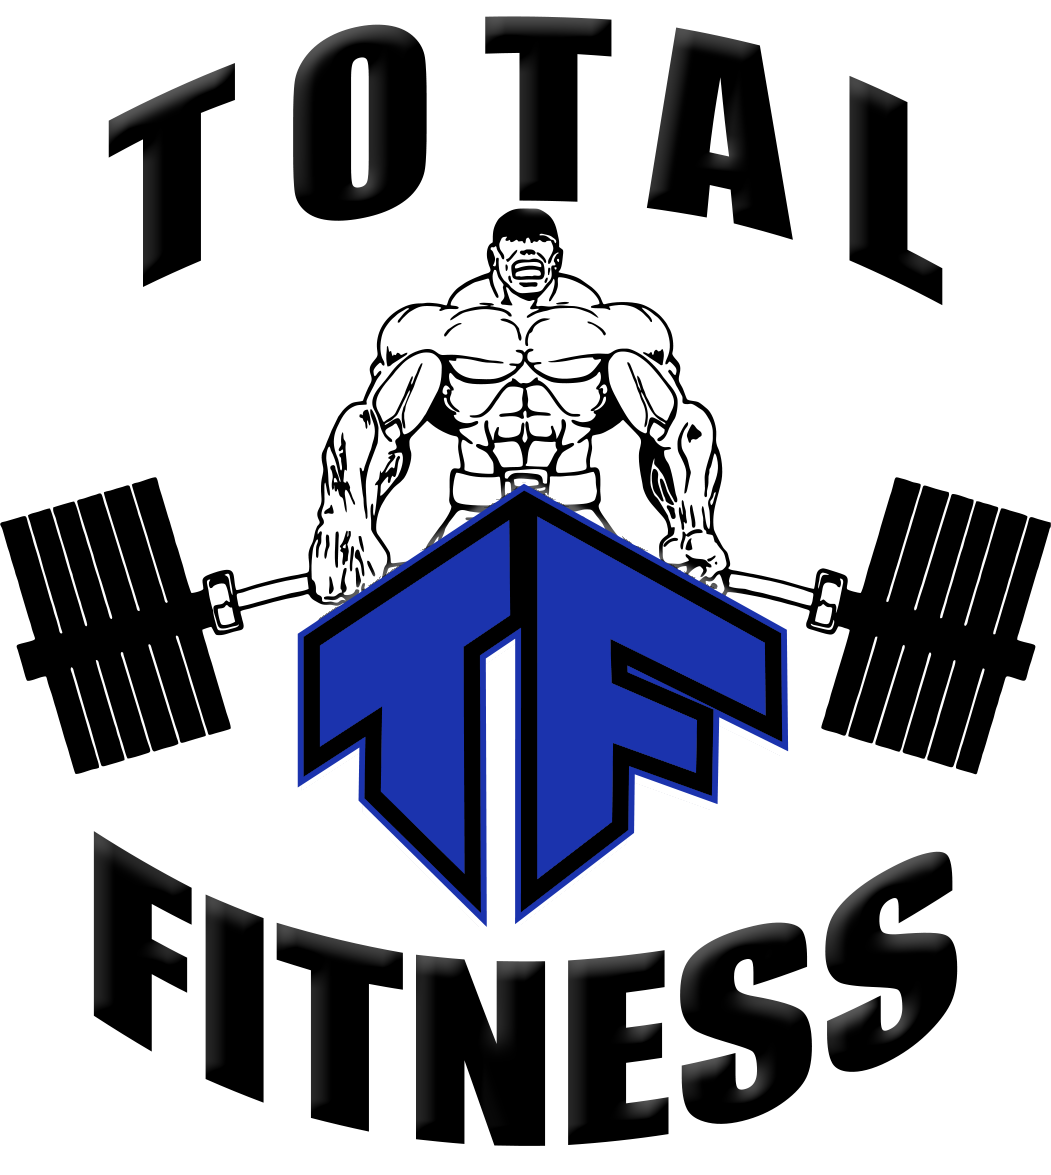 Weight clipart fitness goal. Total elite gym of